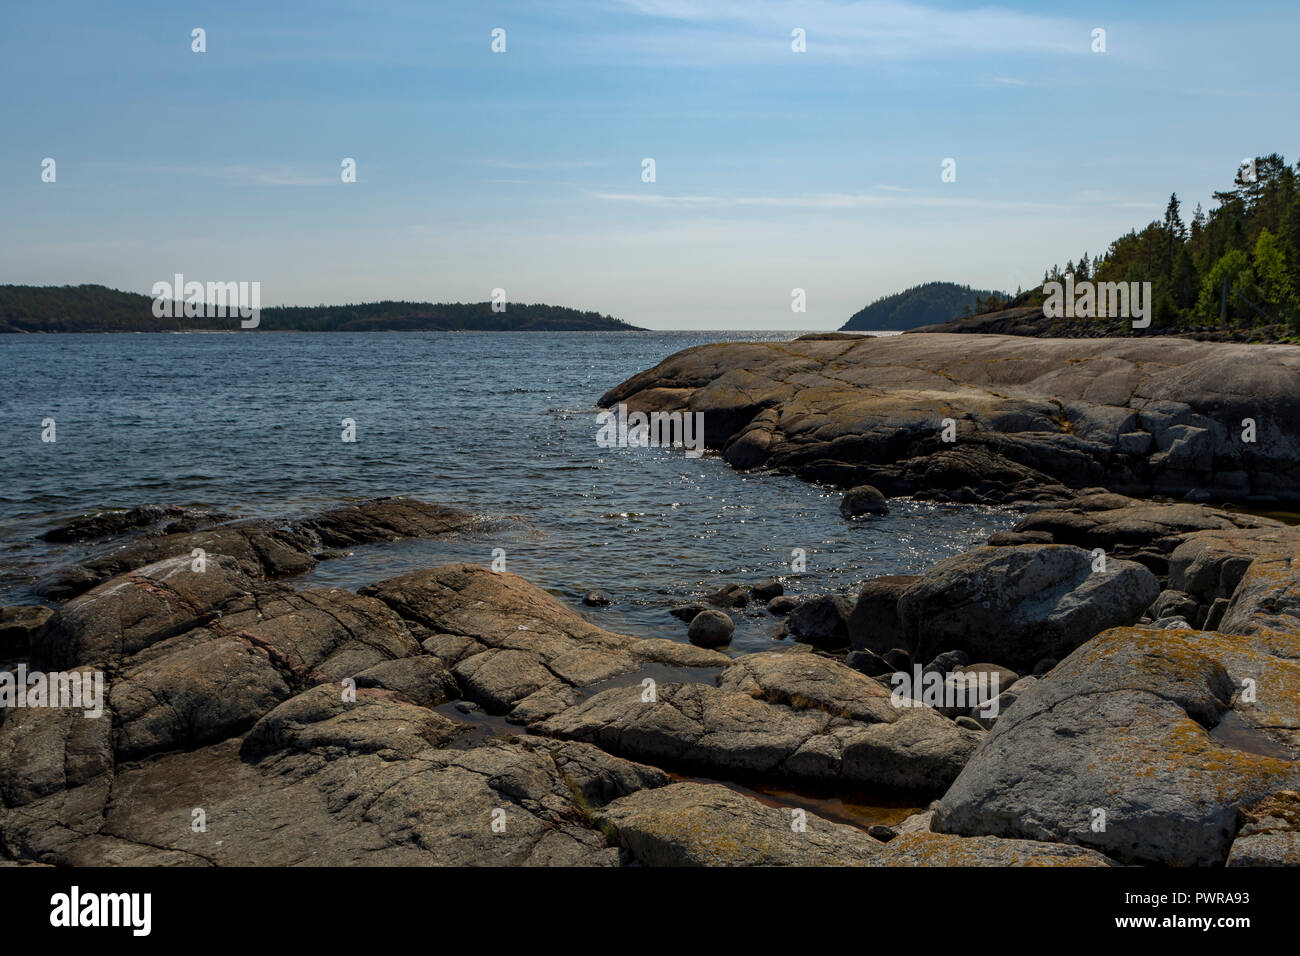 Rocks in seashore in foreground and mountain and blue sky in background, picture from High Coast Area in Northern Sweden. - Stock Image